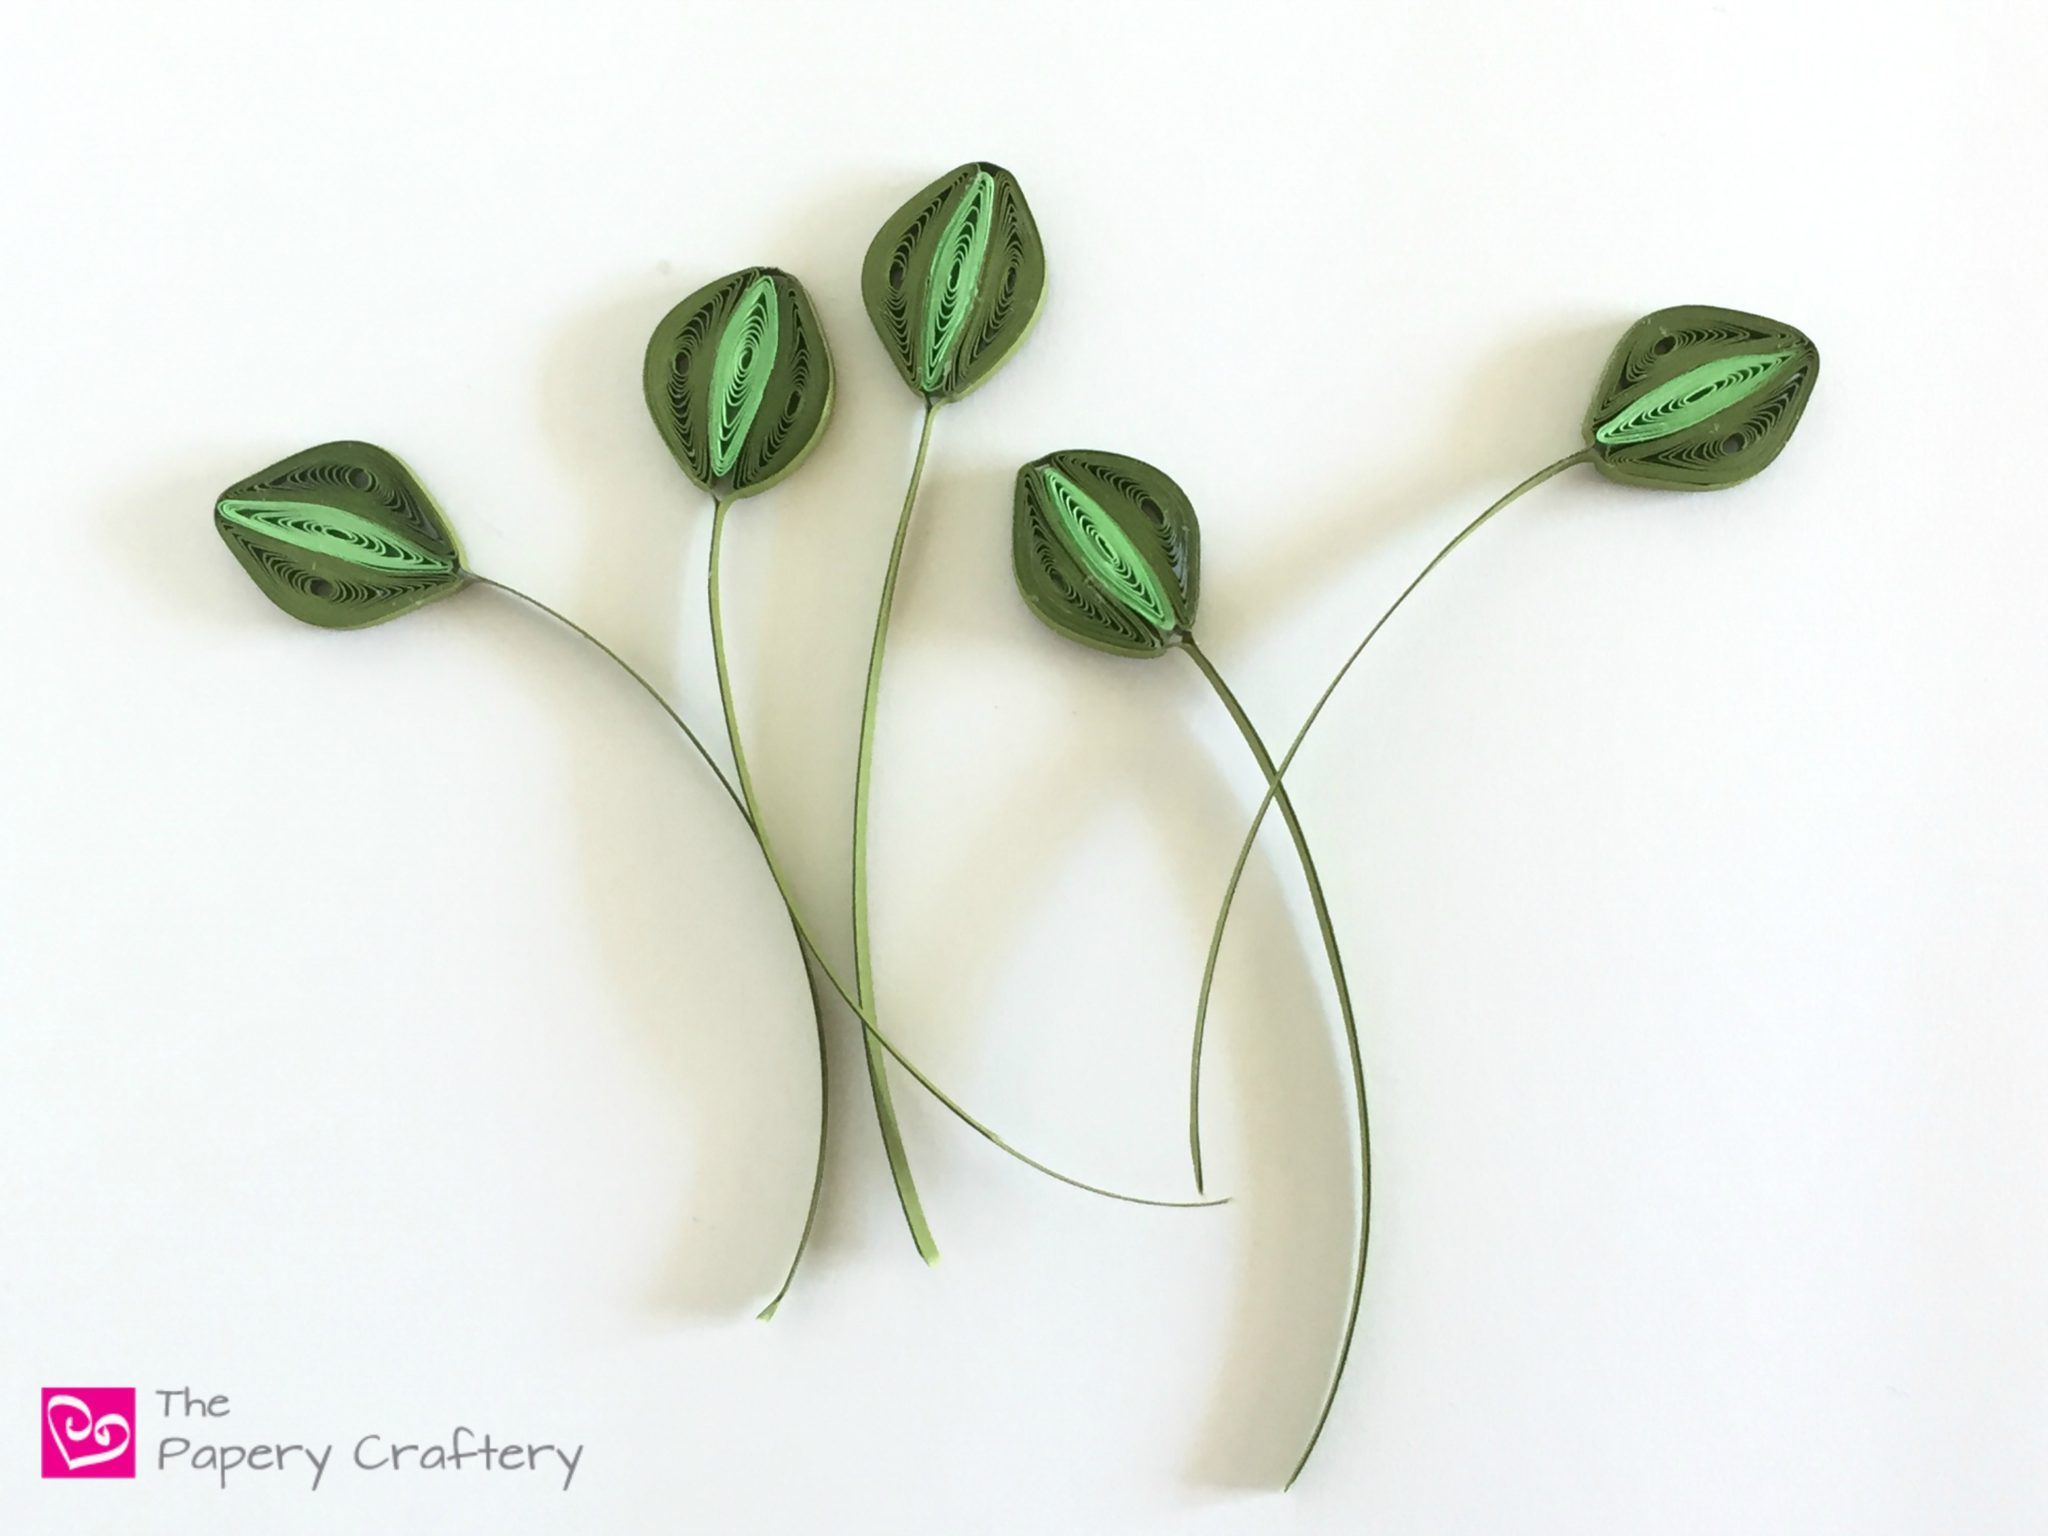 5 More Types of Quilling Paper Greenery ~ Dress up your quilled flowers with more complex leaves and greens || www.thepaperycraftery.com